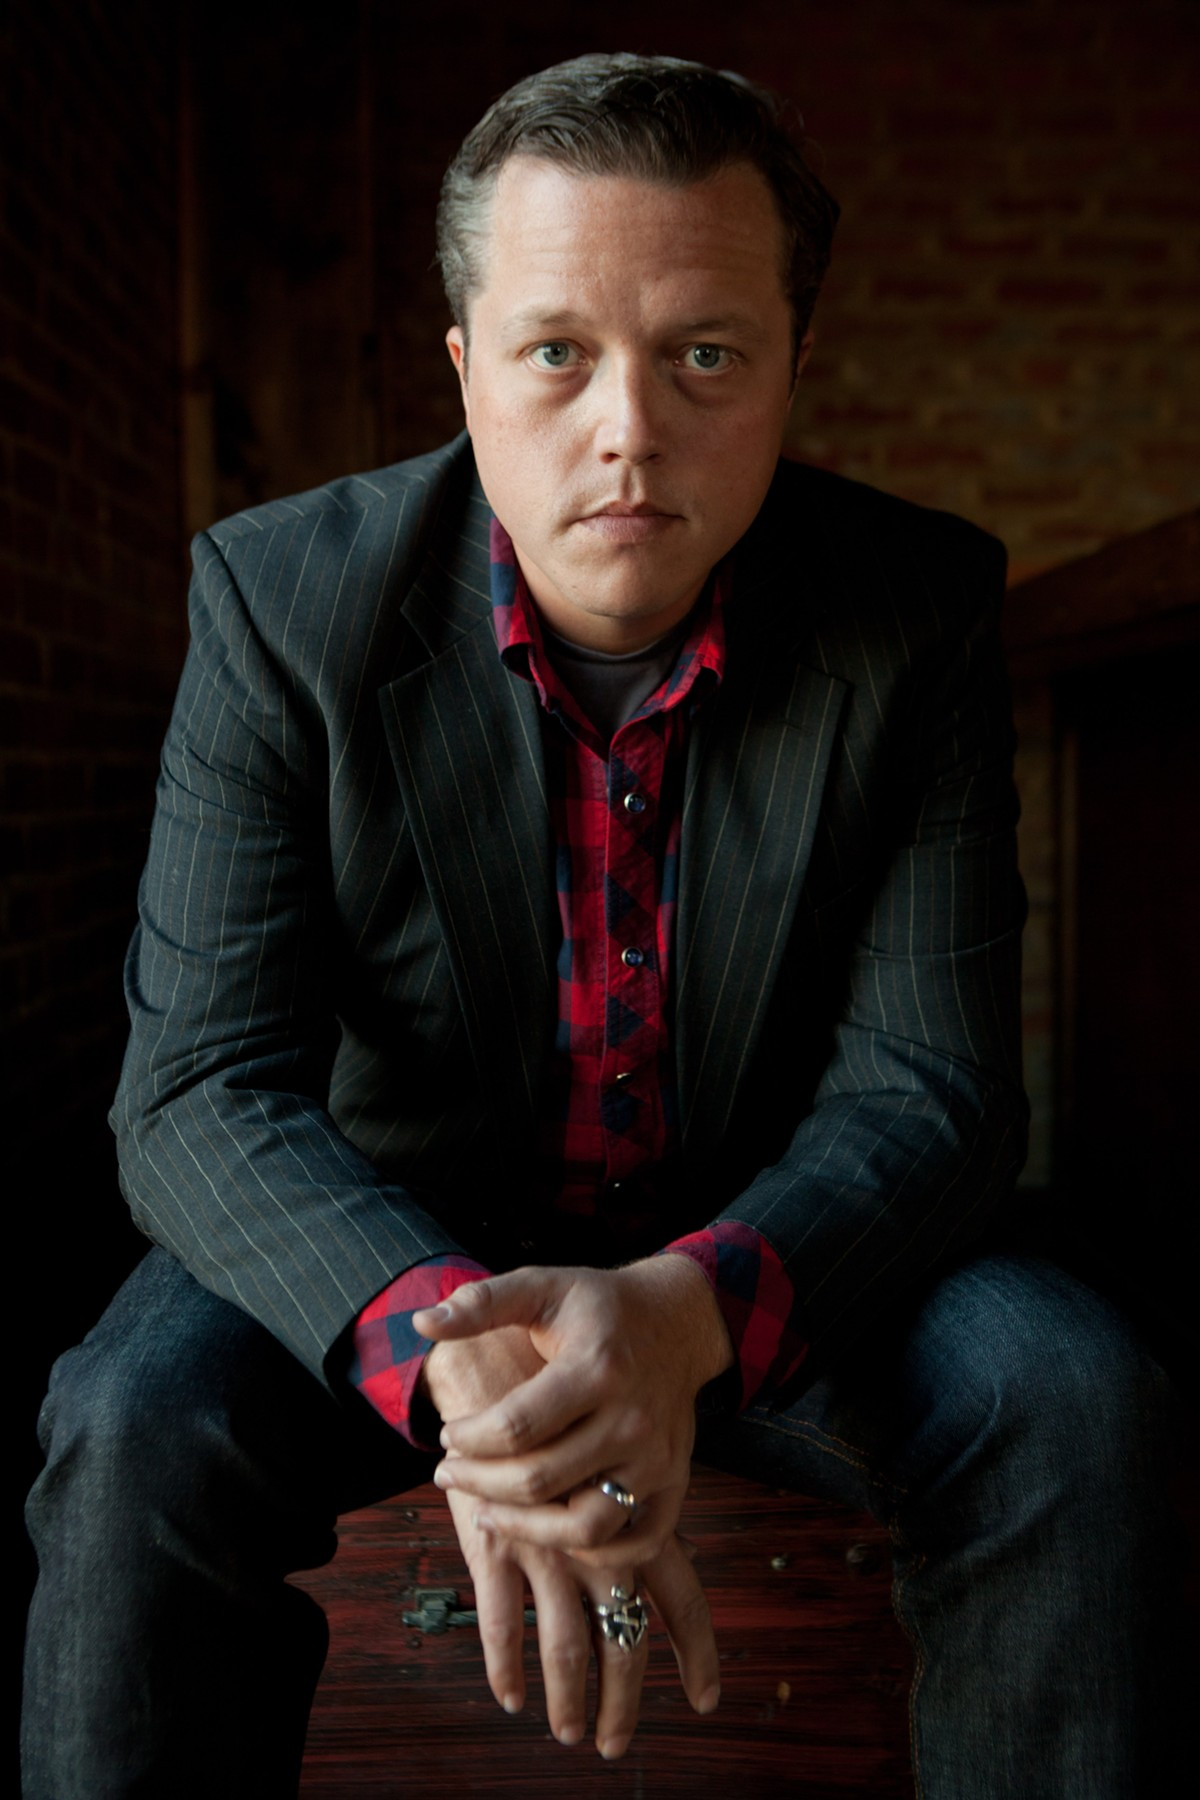 5-13_sel_jason_isbell_photo_by_michael_wilson.jpg